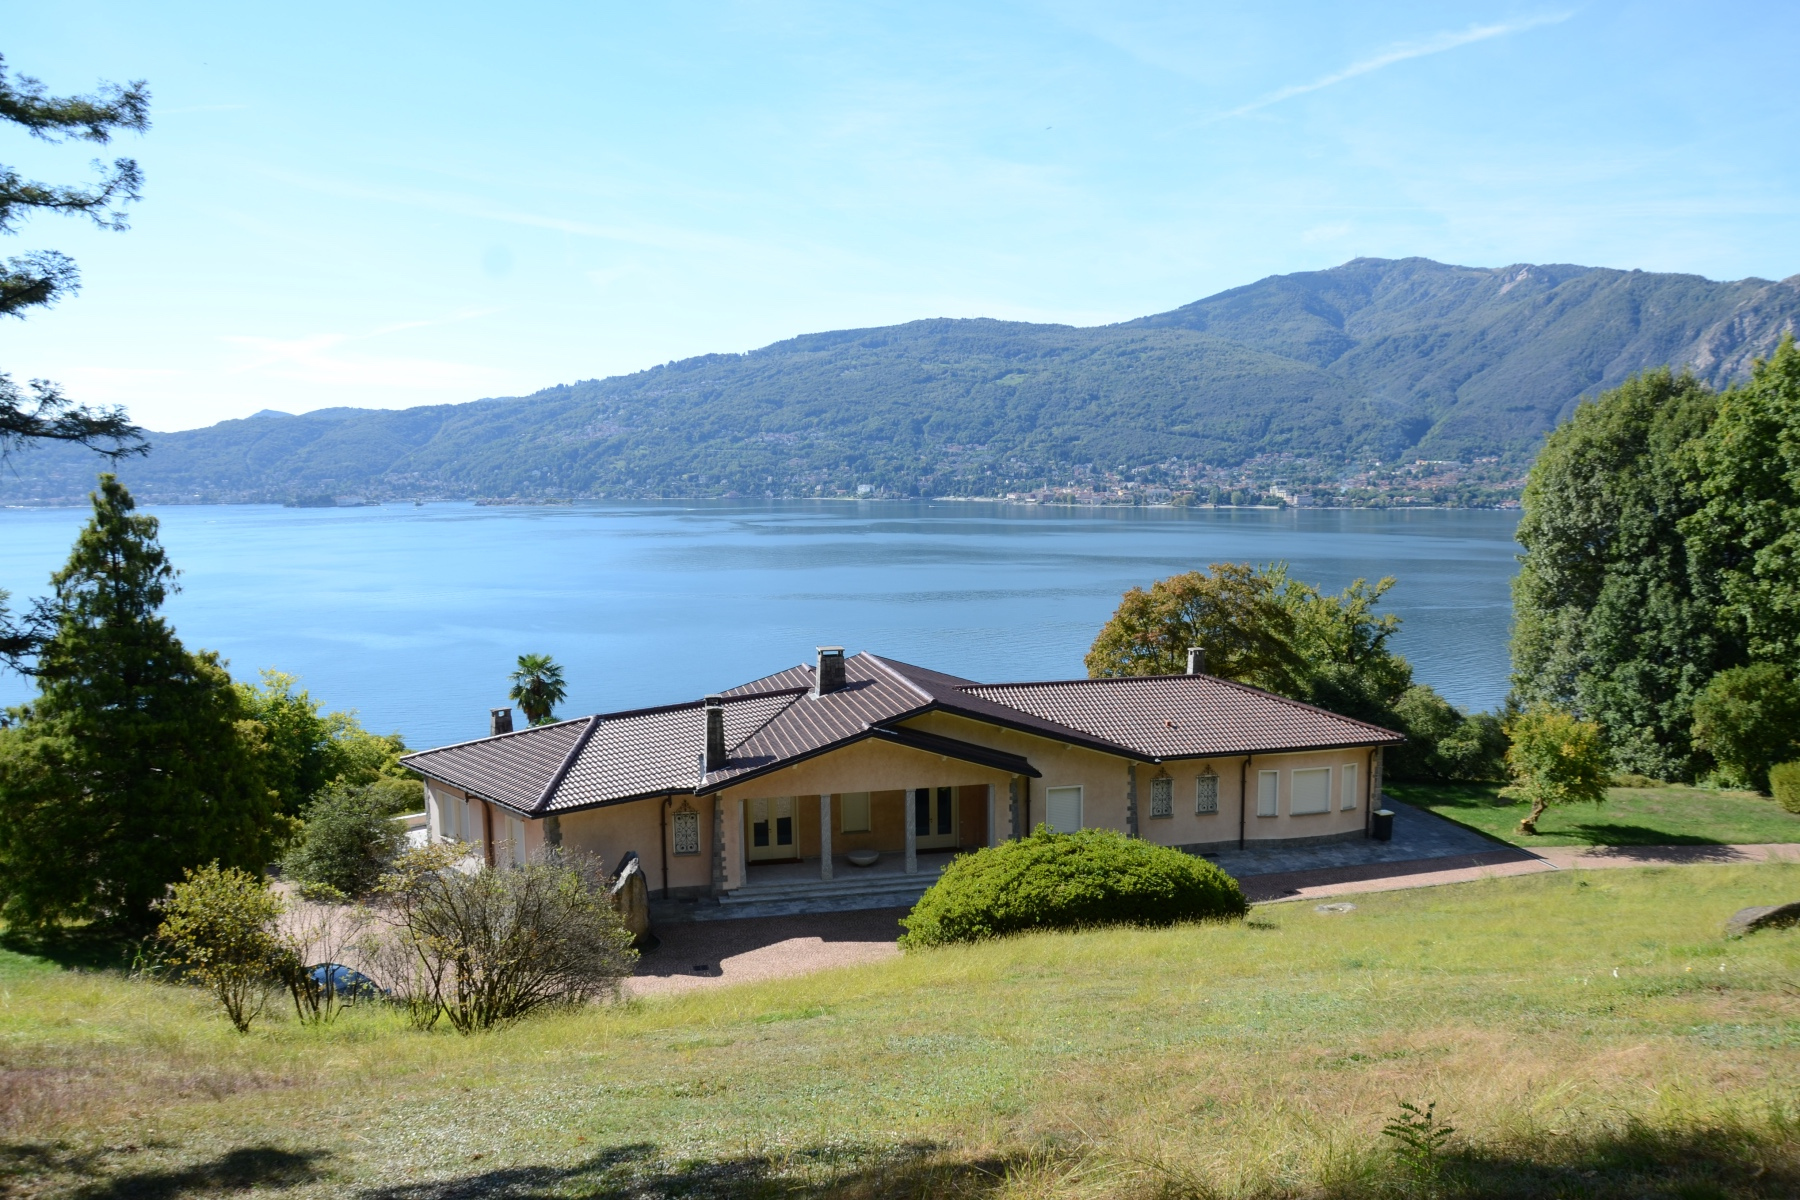 Other Residential Homes 为 销售 在 Villa on the outskirts of Verbania overlooking the Isola Madre Verbania, 韦尔巴诺-库西亚-奥索拉 意大利